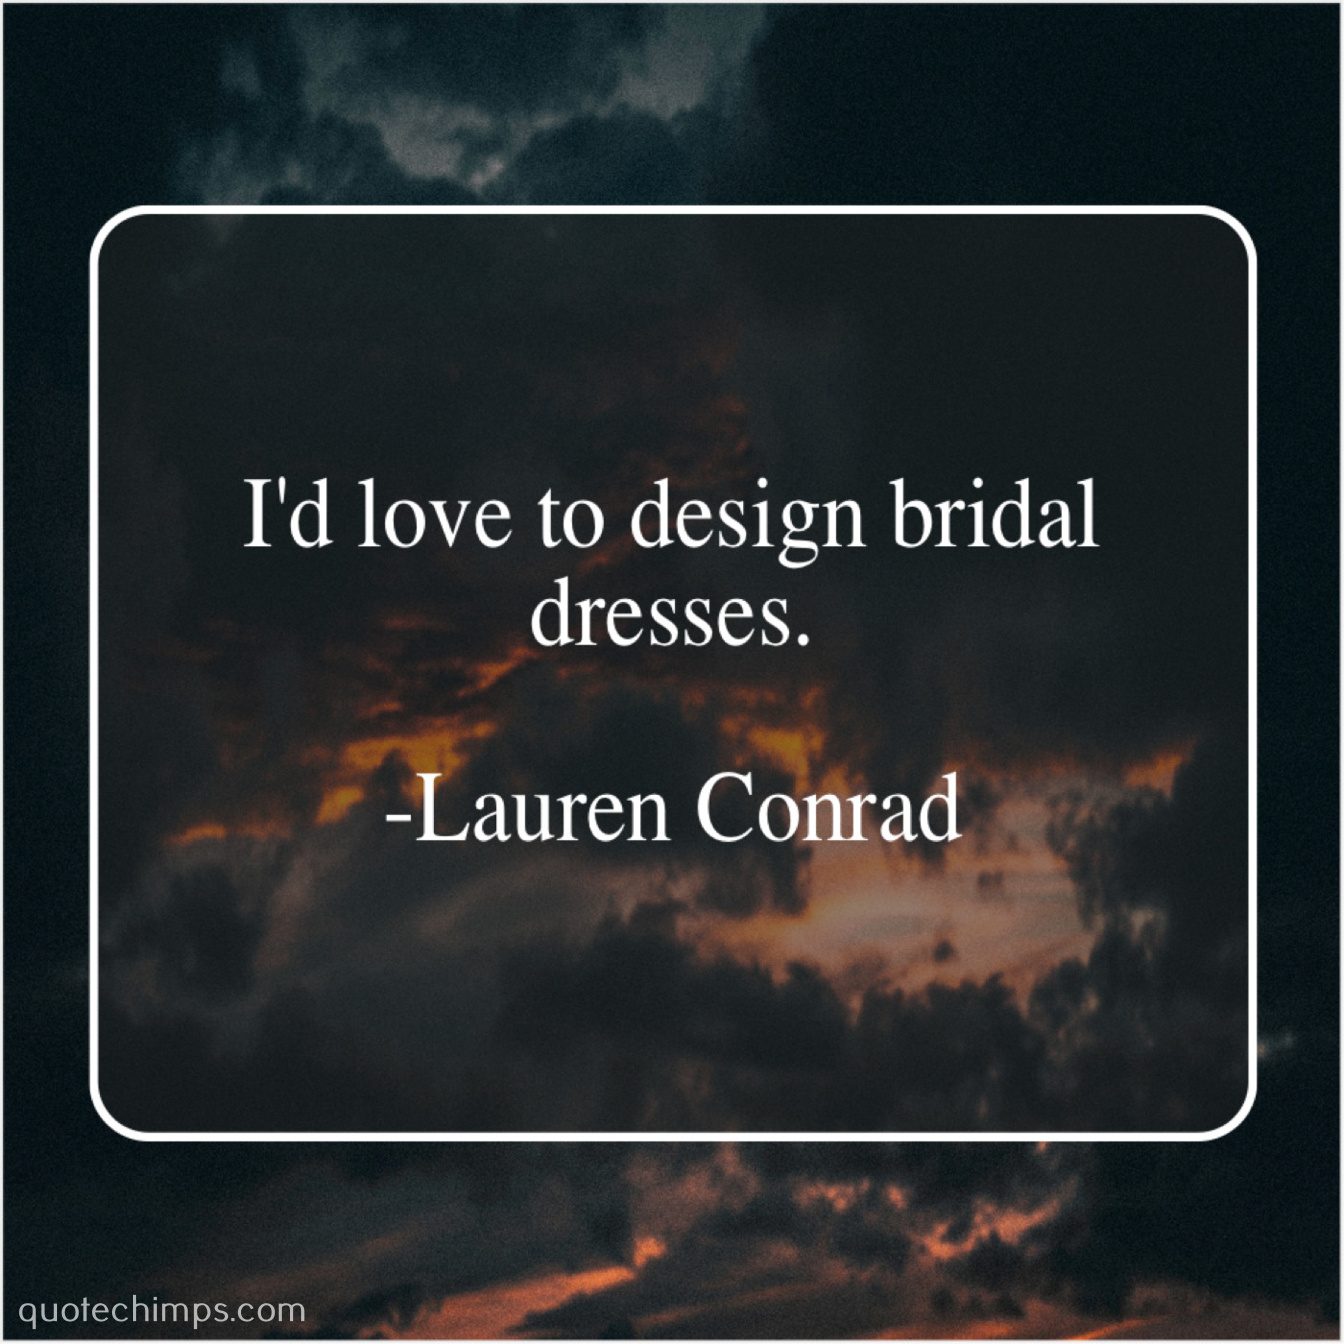 lauren conrad i d love to design bridal